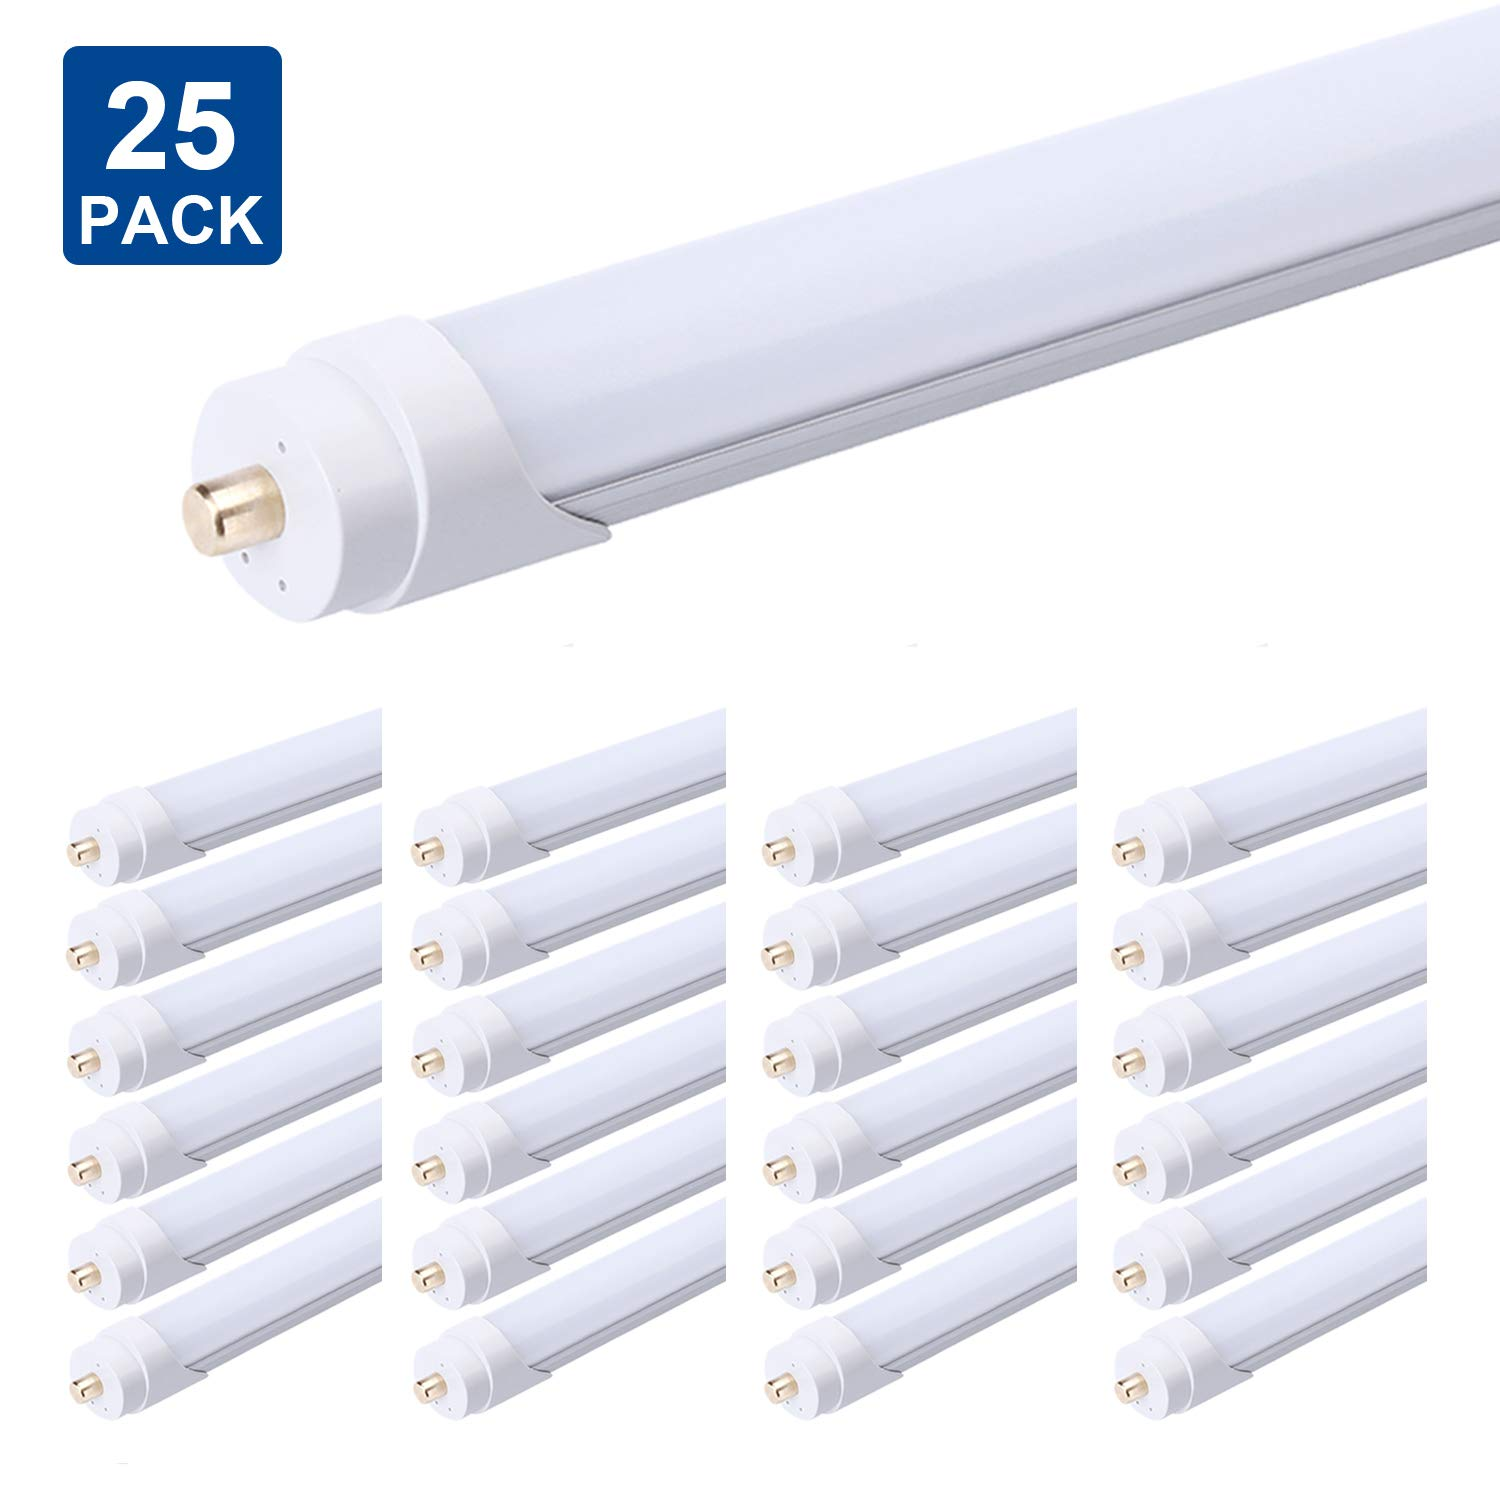 FALANFA Single Pin T8 96'' 8ft LED Tube 45W, 8' LED Fluorescent Tube Replacement,AC 85V 277V Input, 6000K Bright White,4500LM Frosted Lens Cover Super Bright 25-Pack